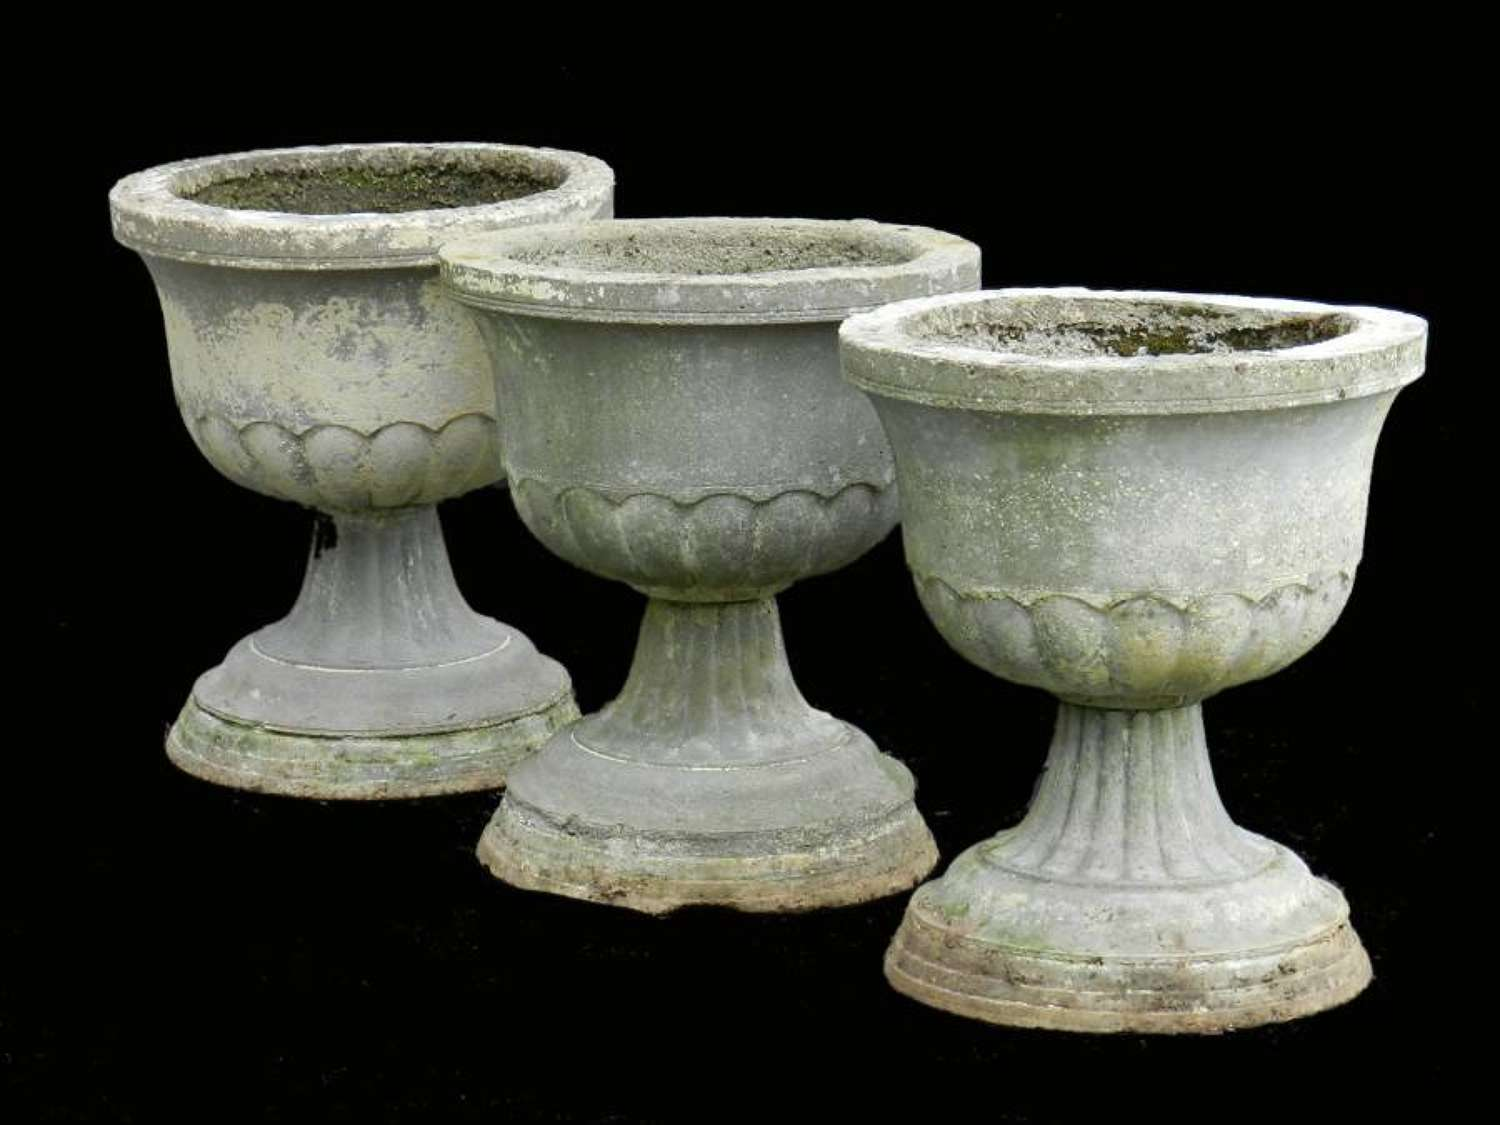 3 Garden Urns Composite Planters early C20